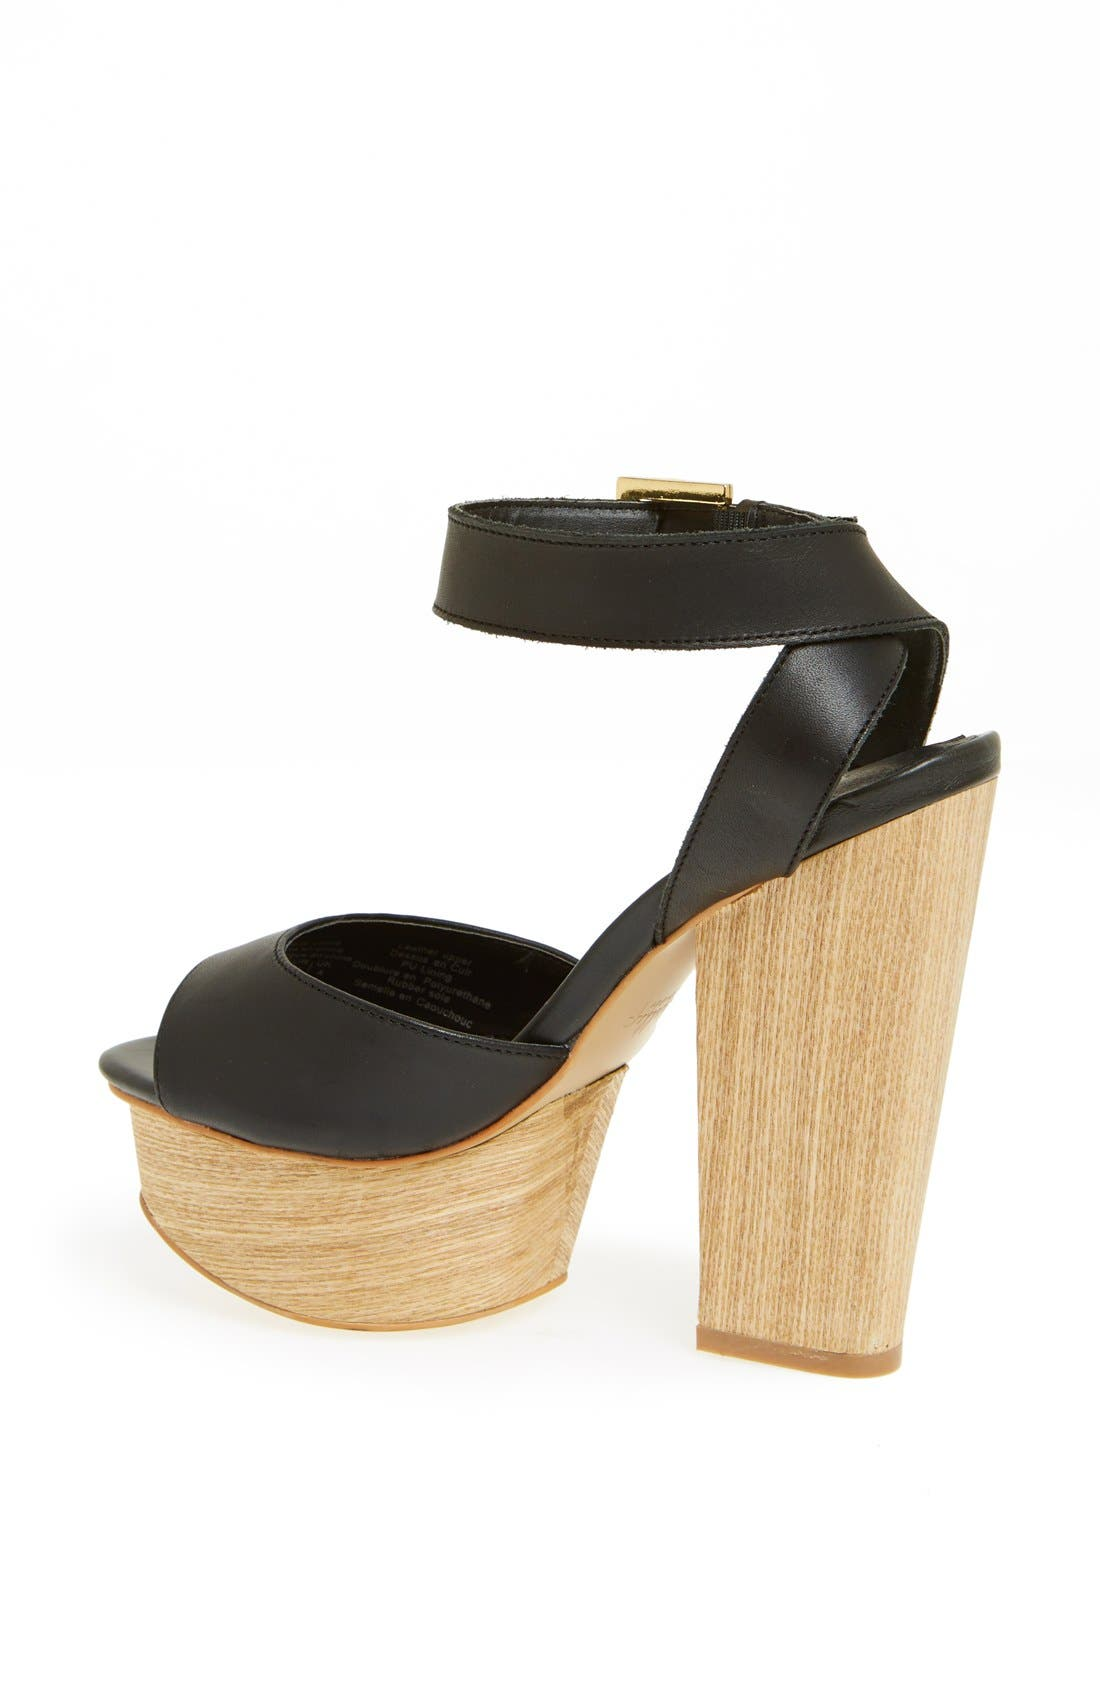 'Aaelle' Platform Sandal,                             Alternate thumbnail 2, color,                             002